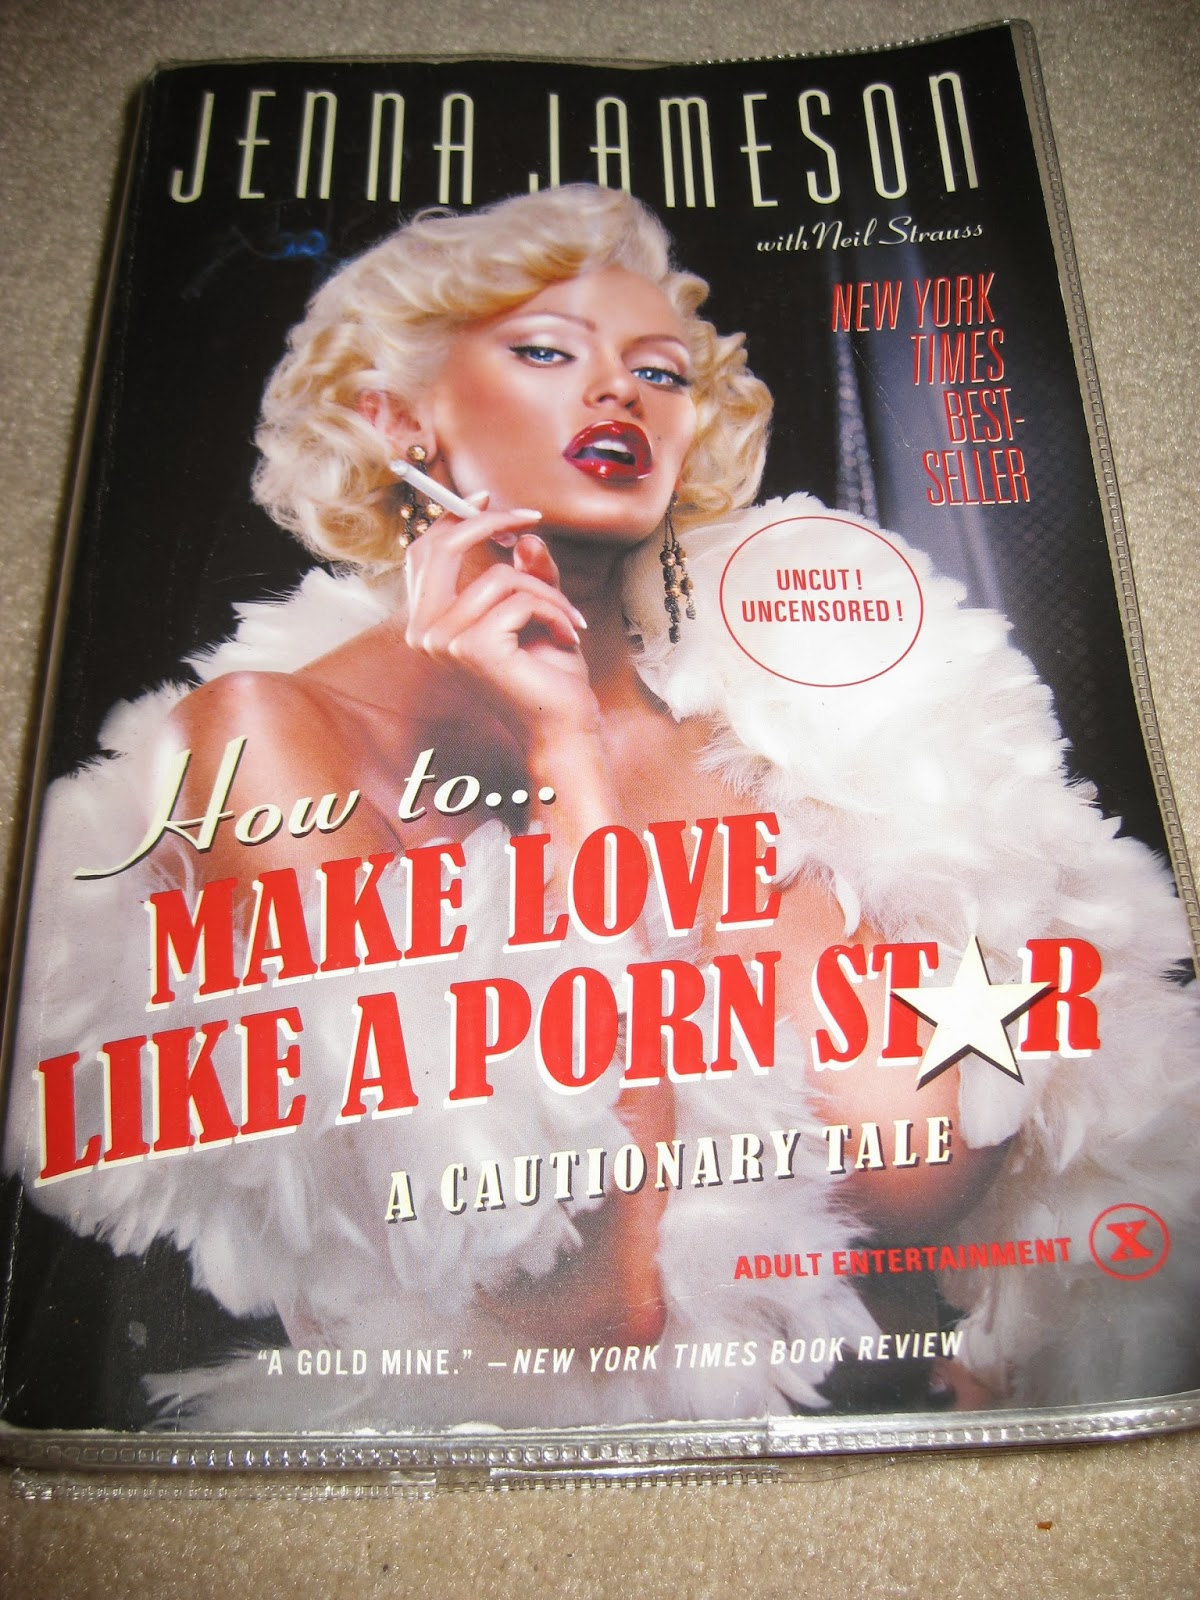 like love make porn star How to Make Love Like a Porn Star: A Cautionary Tale is the autobiography of  adult film star Jenna Jameson, published August 17, 2004.